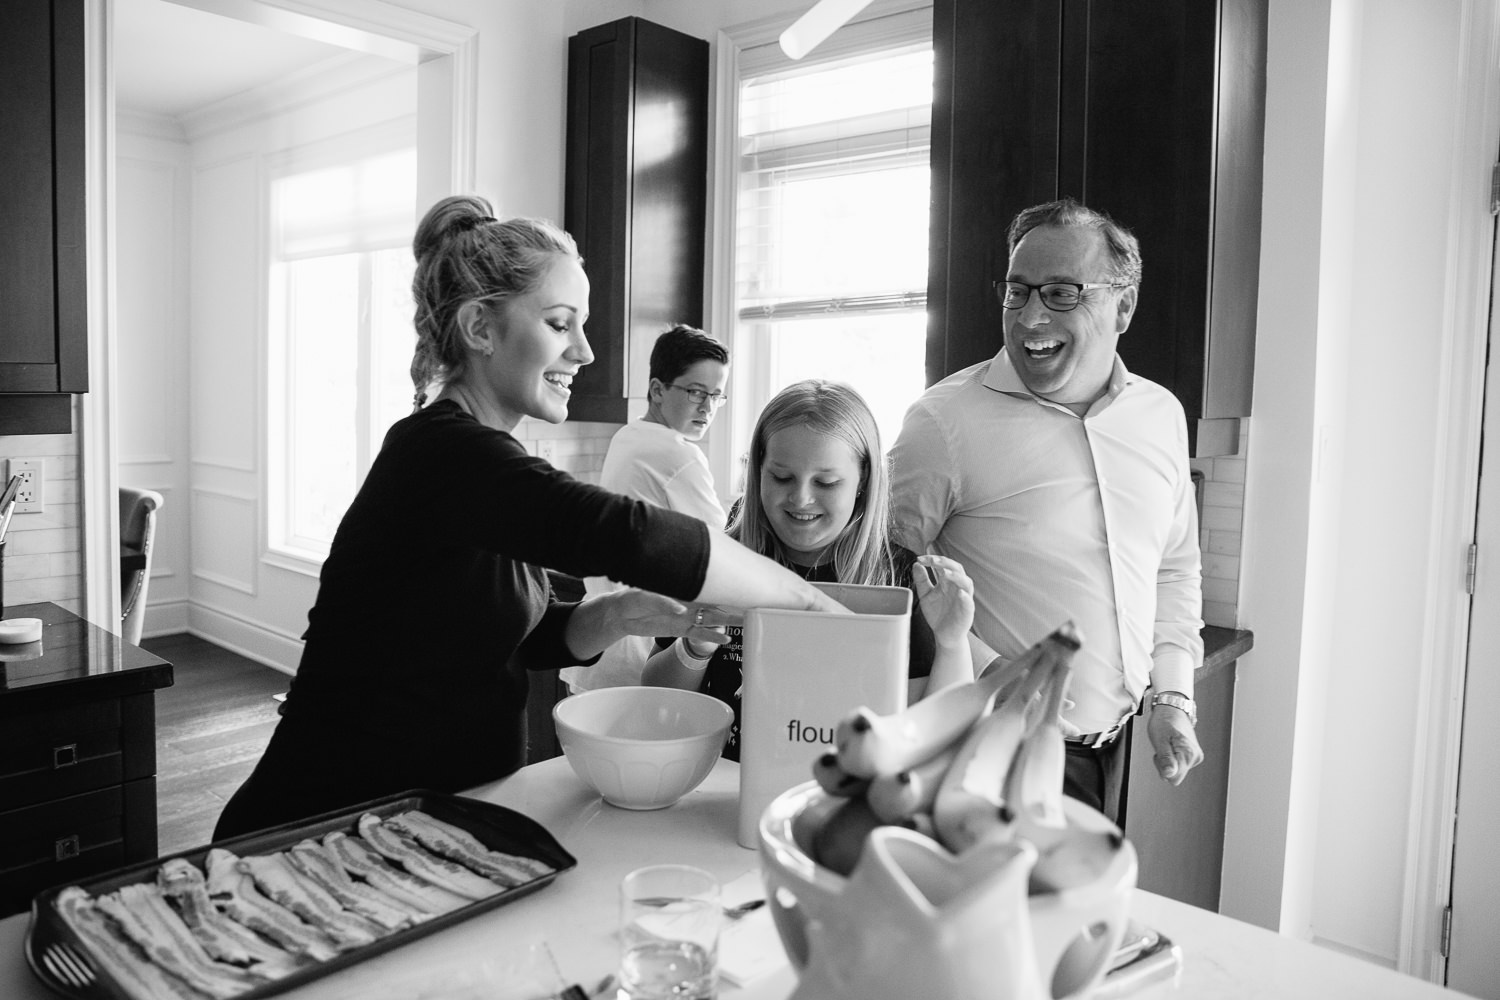 family laughing together in kitchen, mom and 10 year old daughter scooping flour as dad walks by, 13 year old boy in background - Barrie Lifestyle Photos